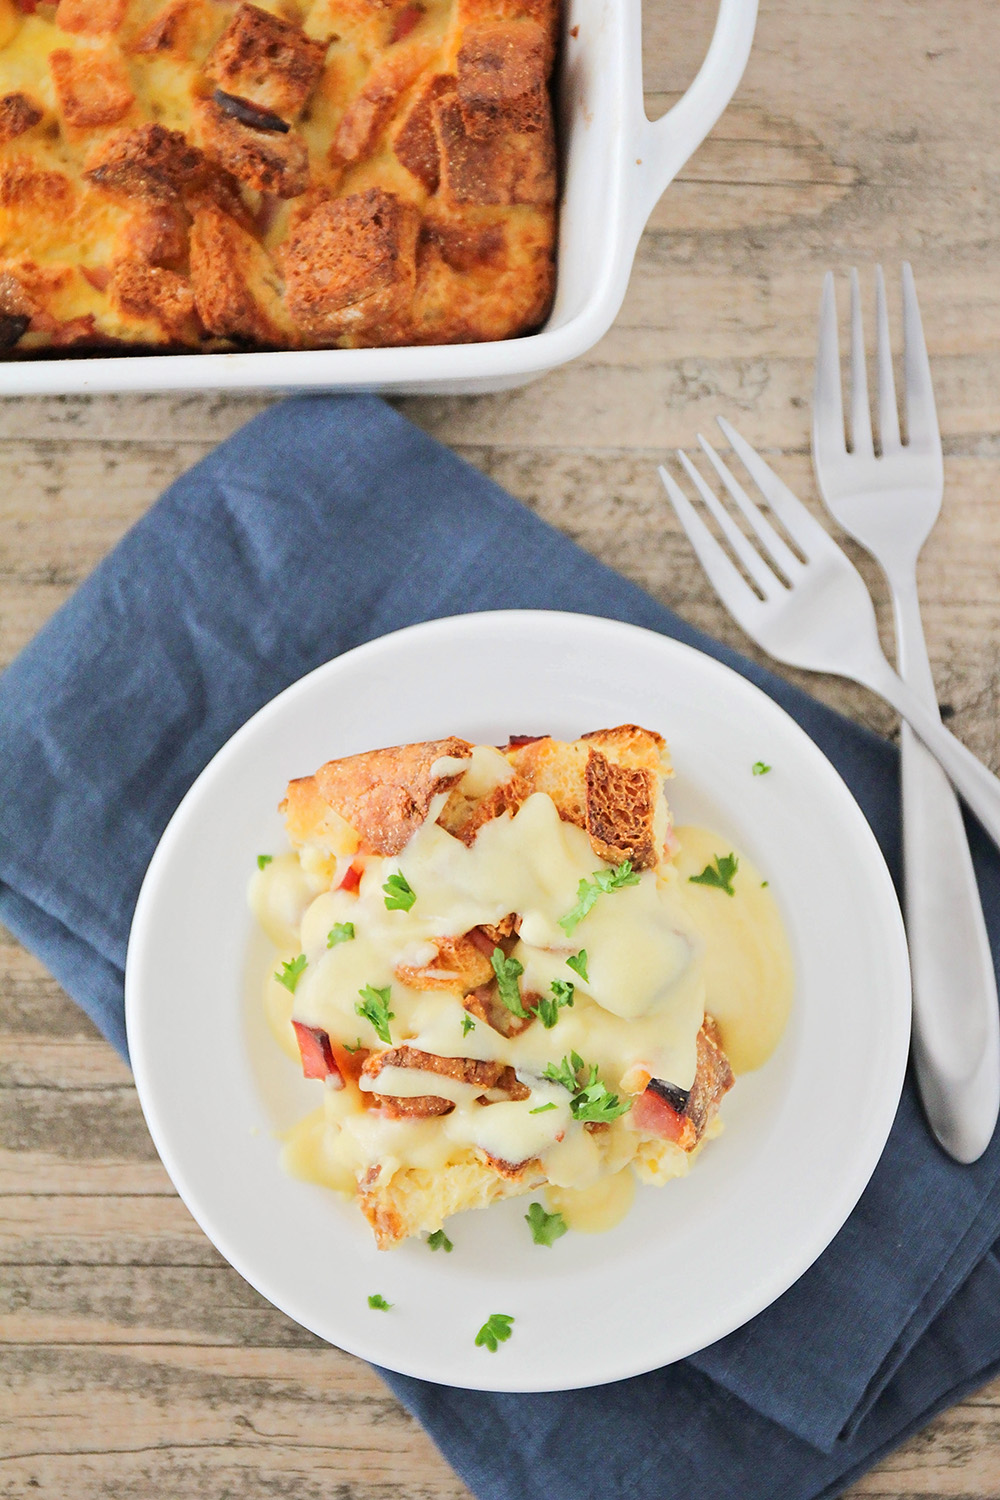 This delicious and savory eggs benedict casserole is the perfect special occasion breakfast!